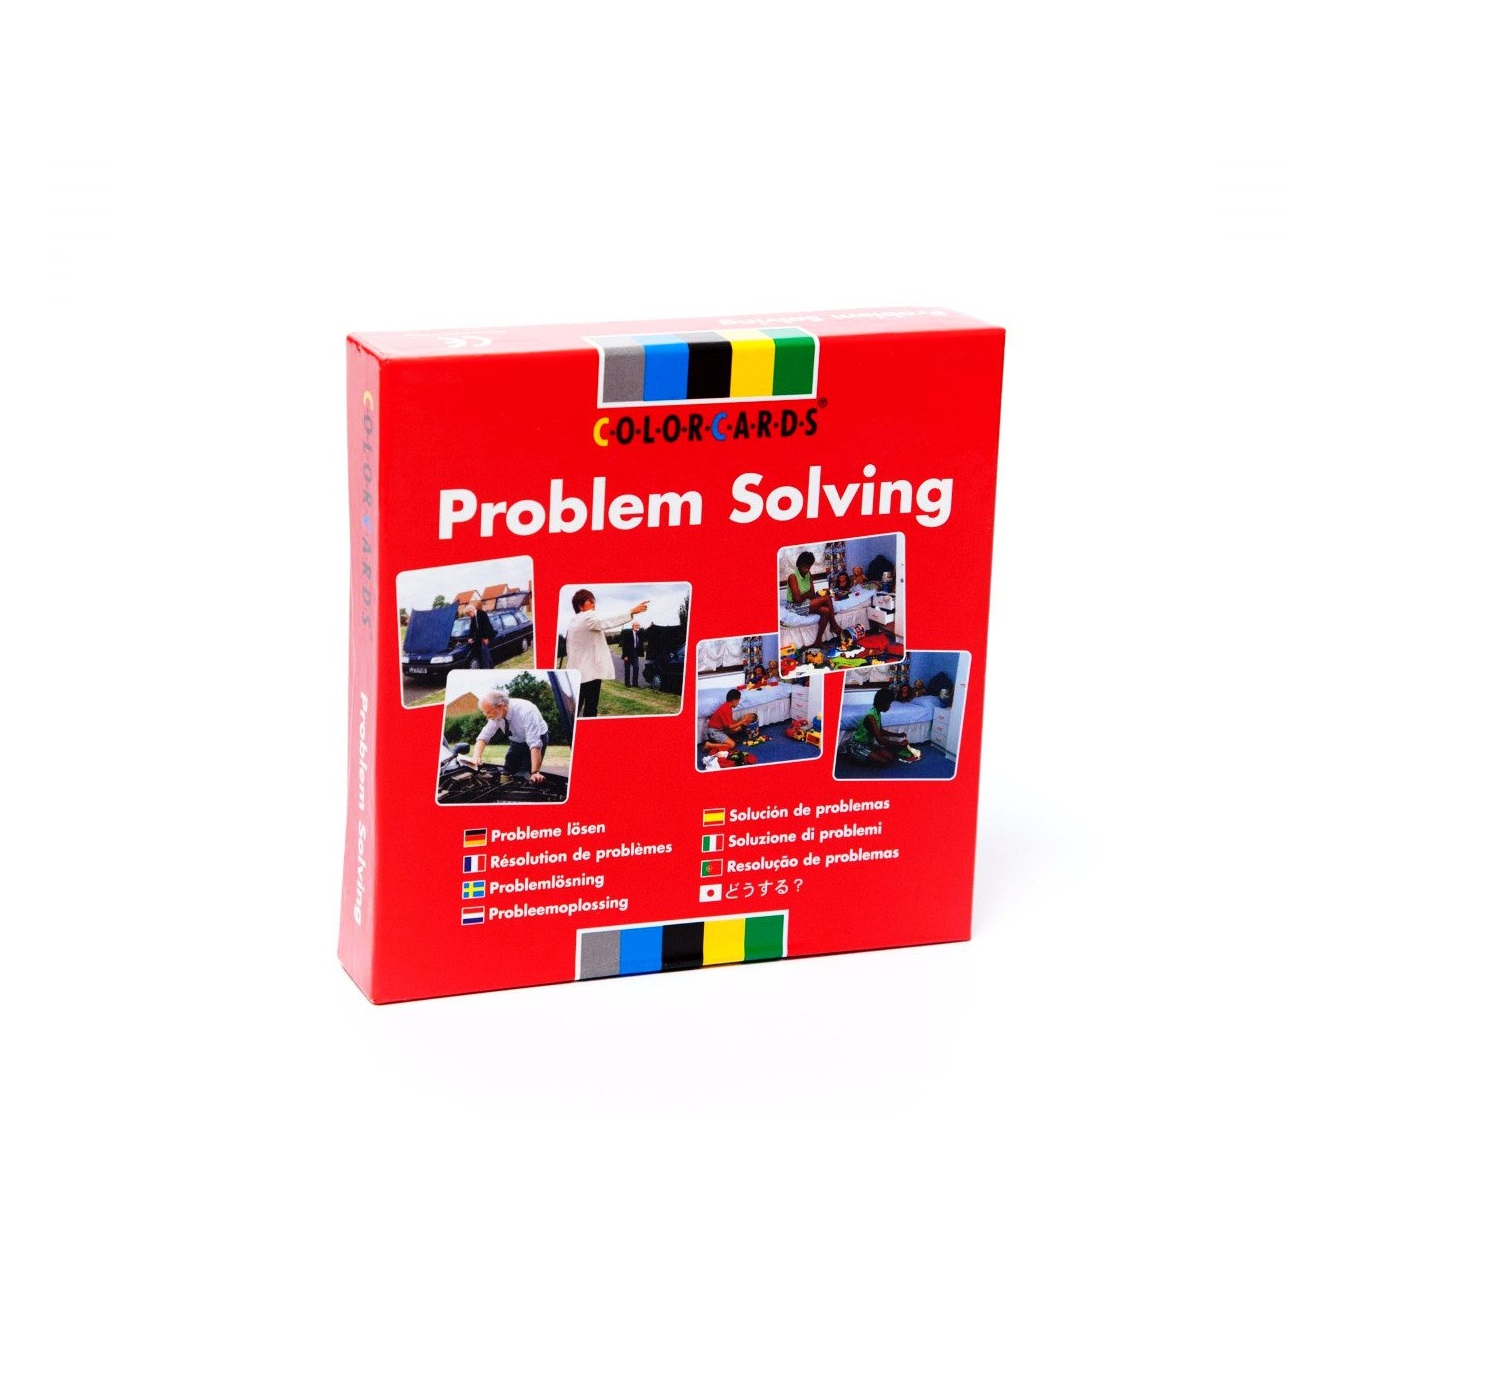 Colorcards: Problem Solving